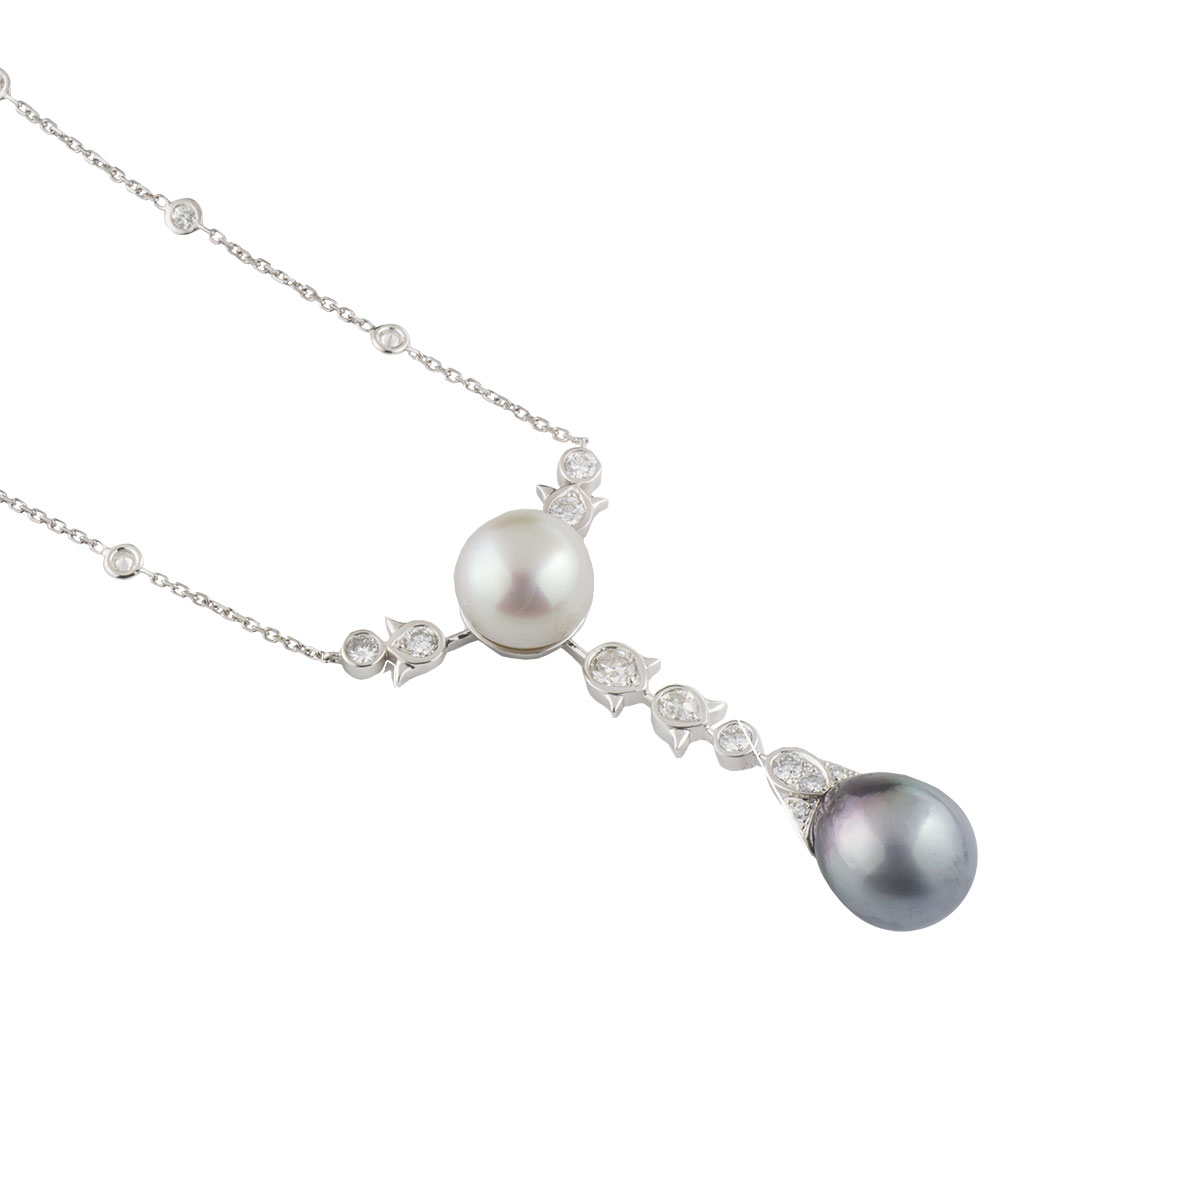 White Gold Diamond and Pearl Necklace